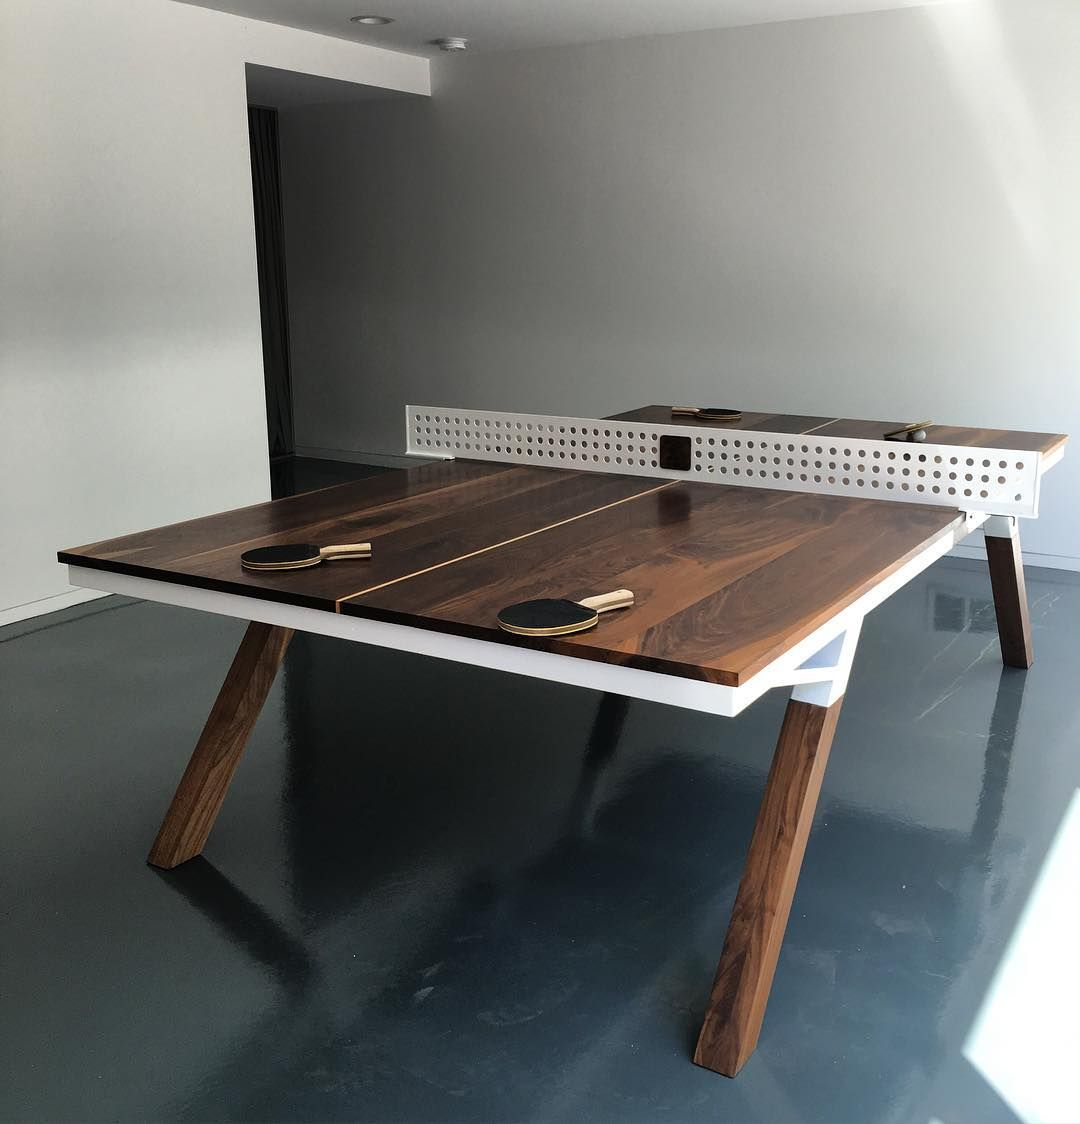 Woolsey Ping Pong Table Ping Pong Table Best Ping Pong Table Ping Pong